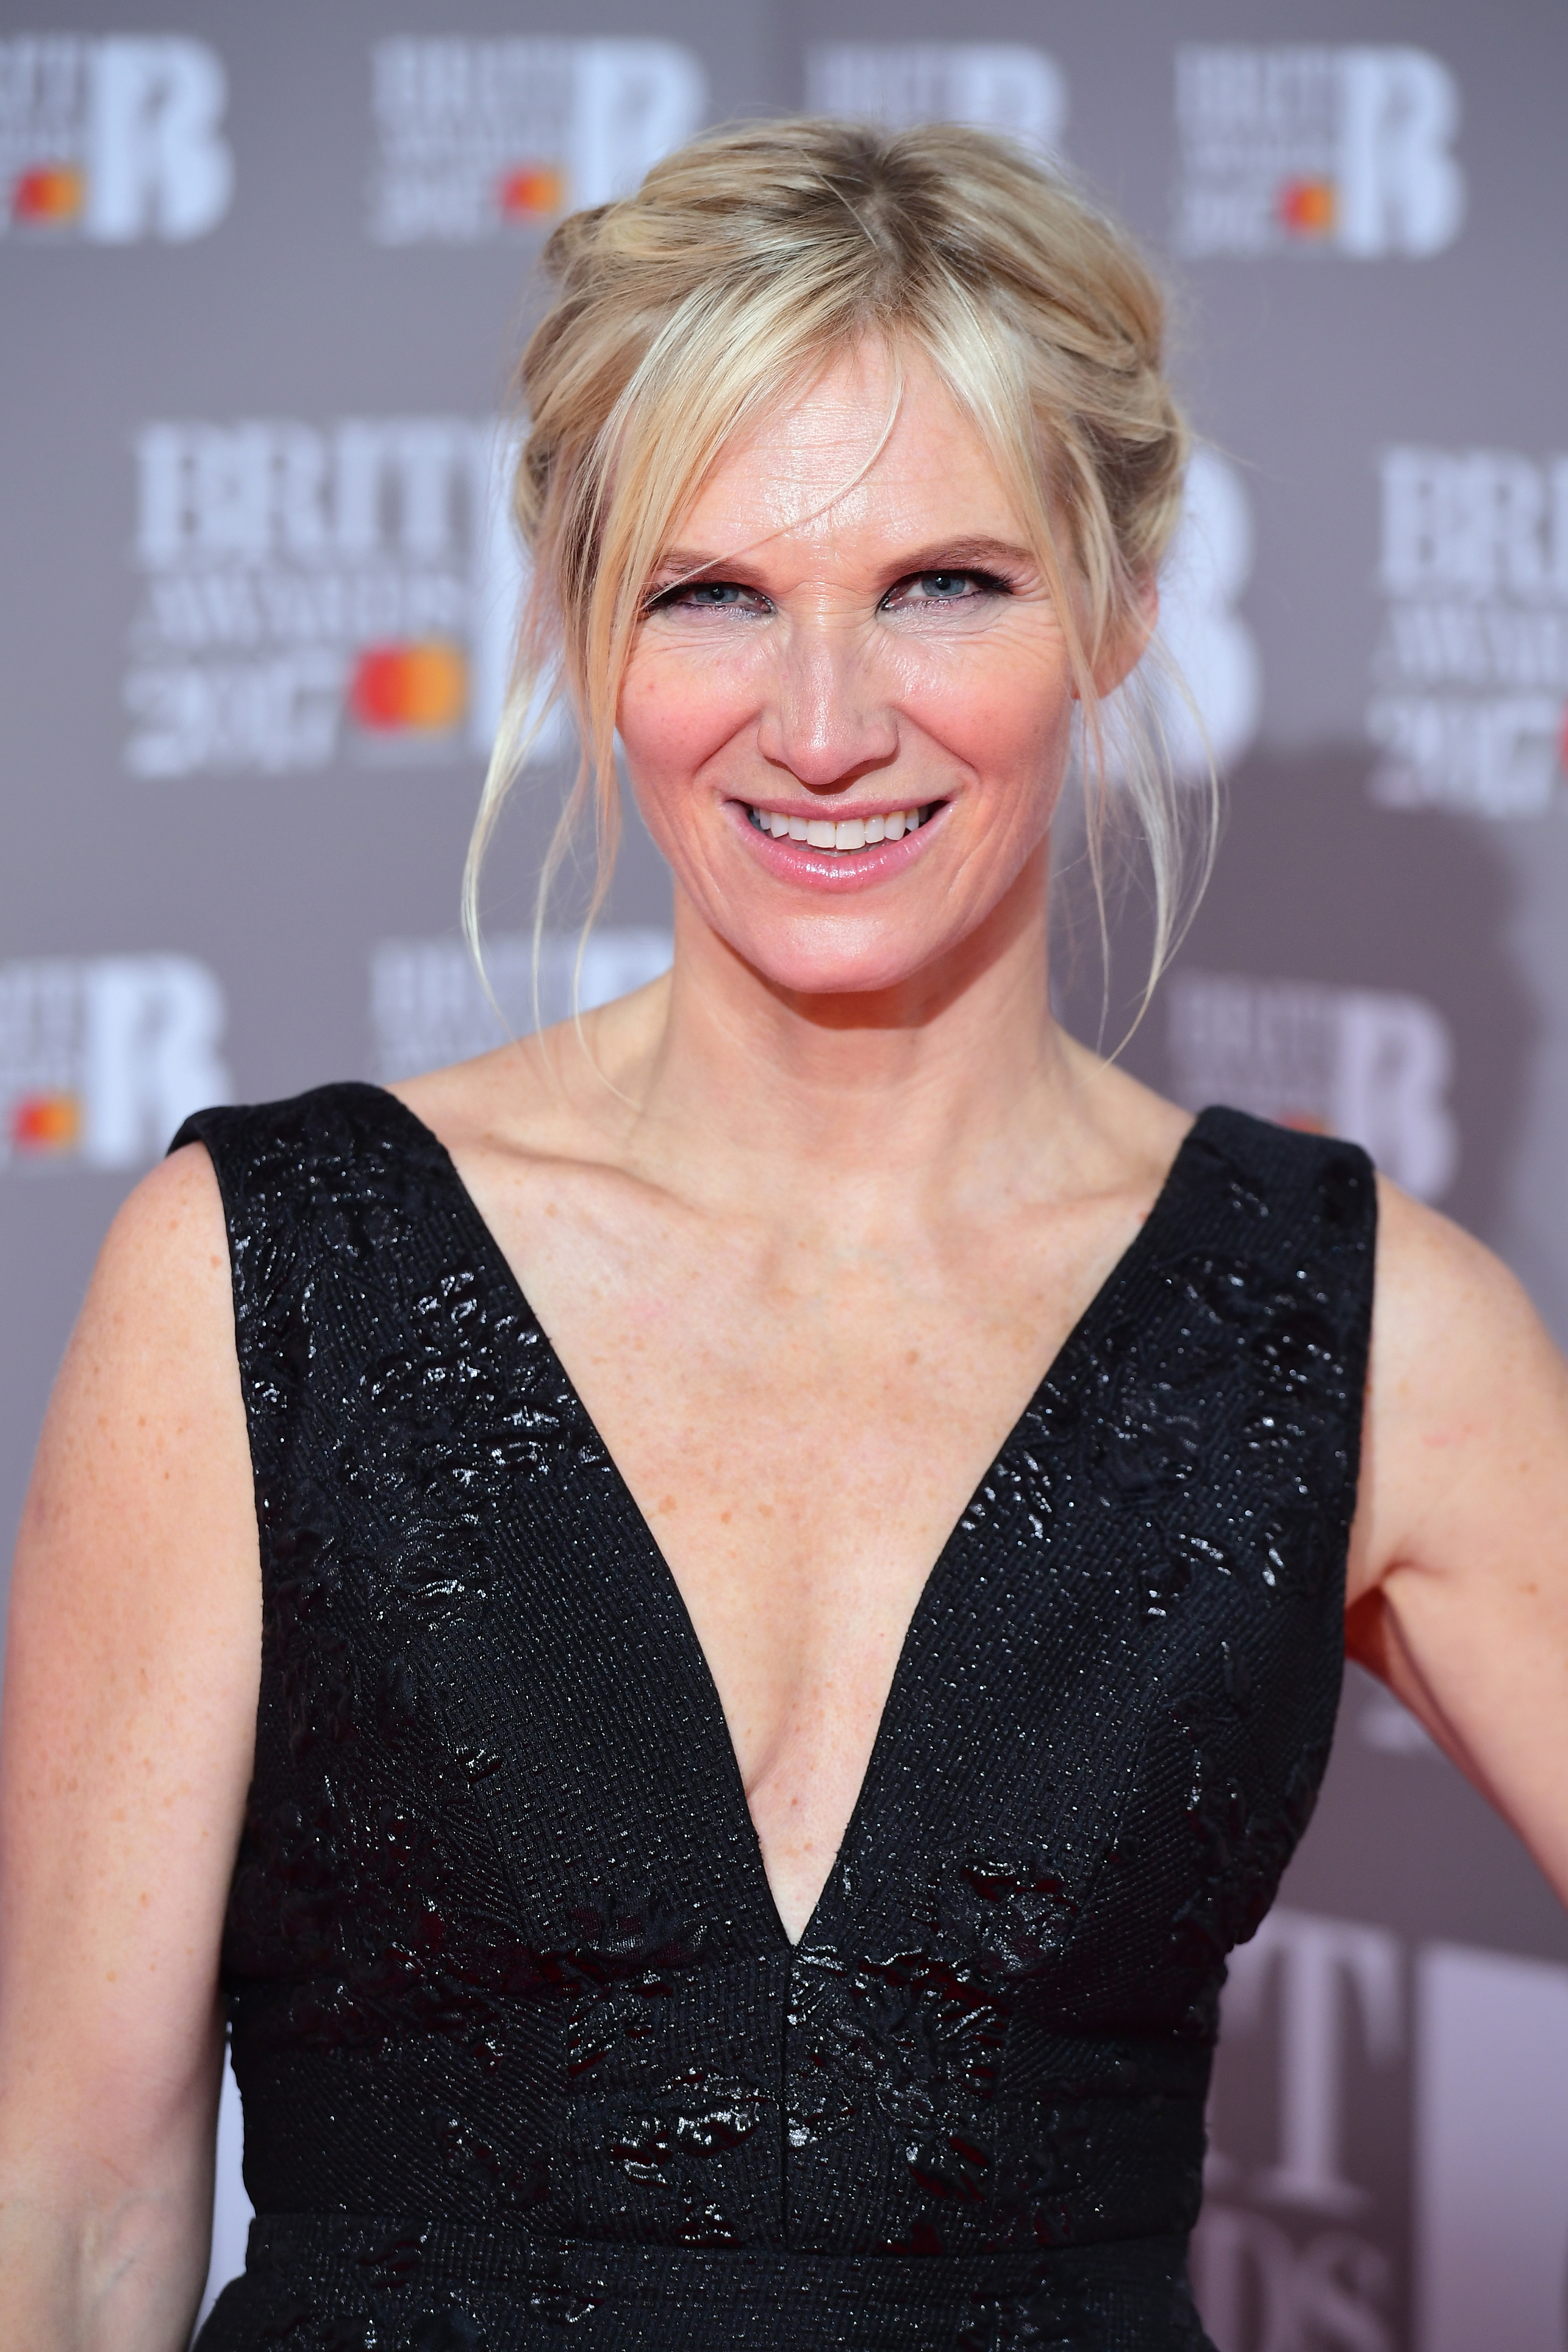 Jo Whiley at the Brit Awards, London, 2017. (Ian West/PA)